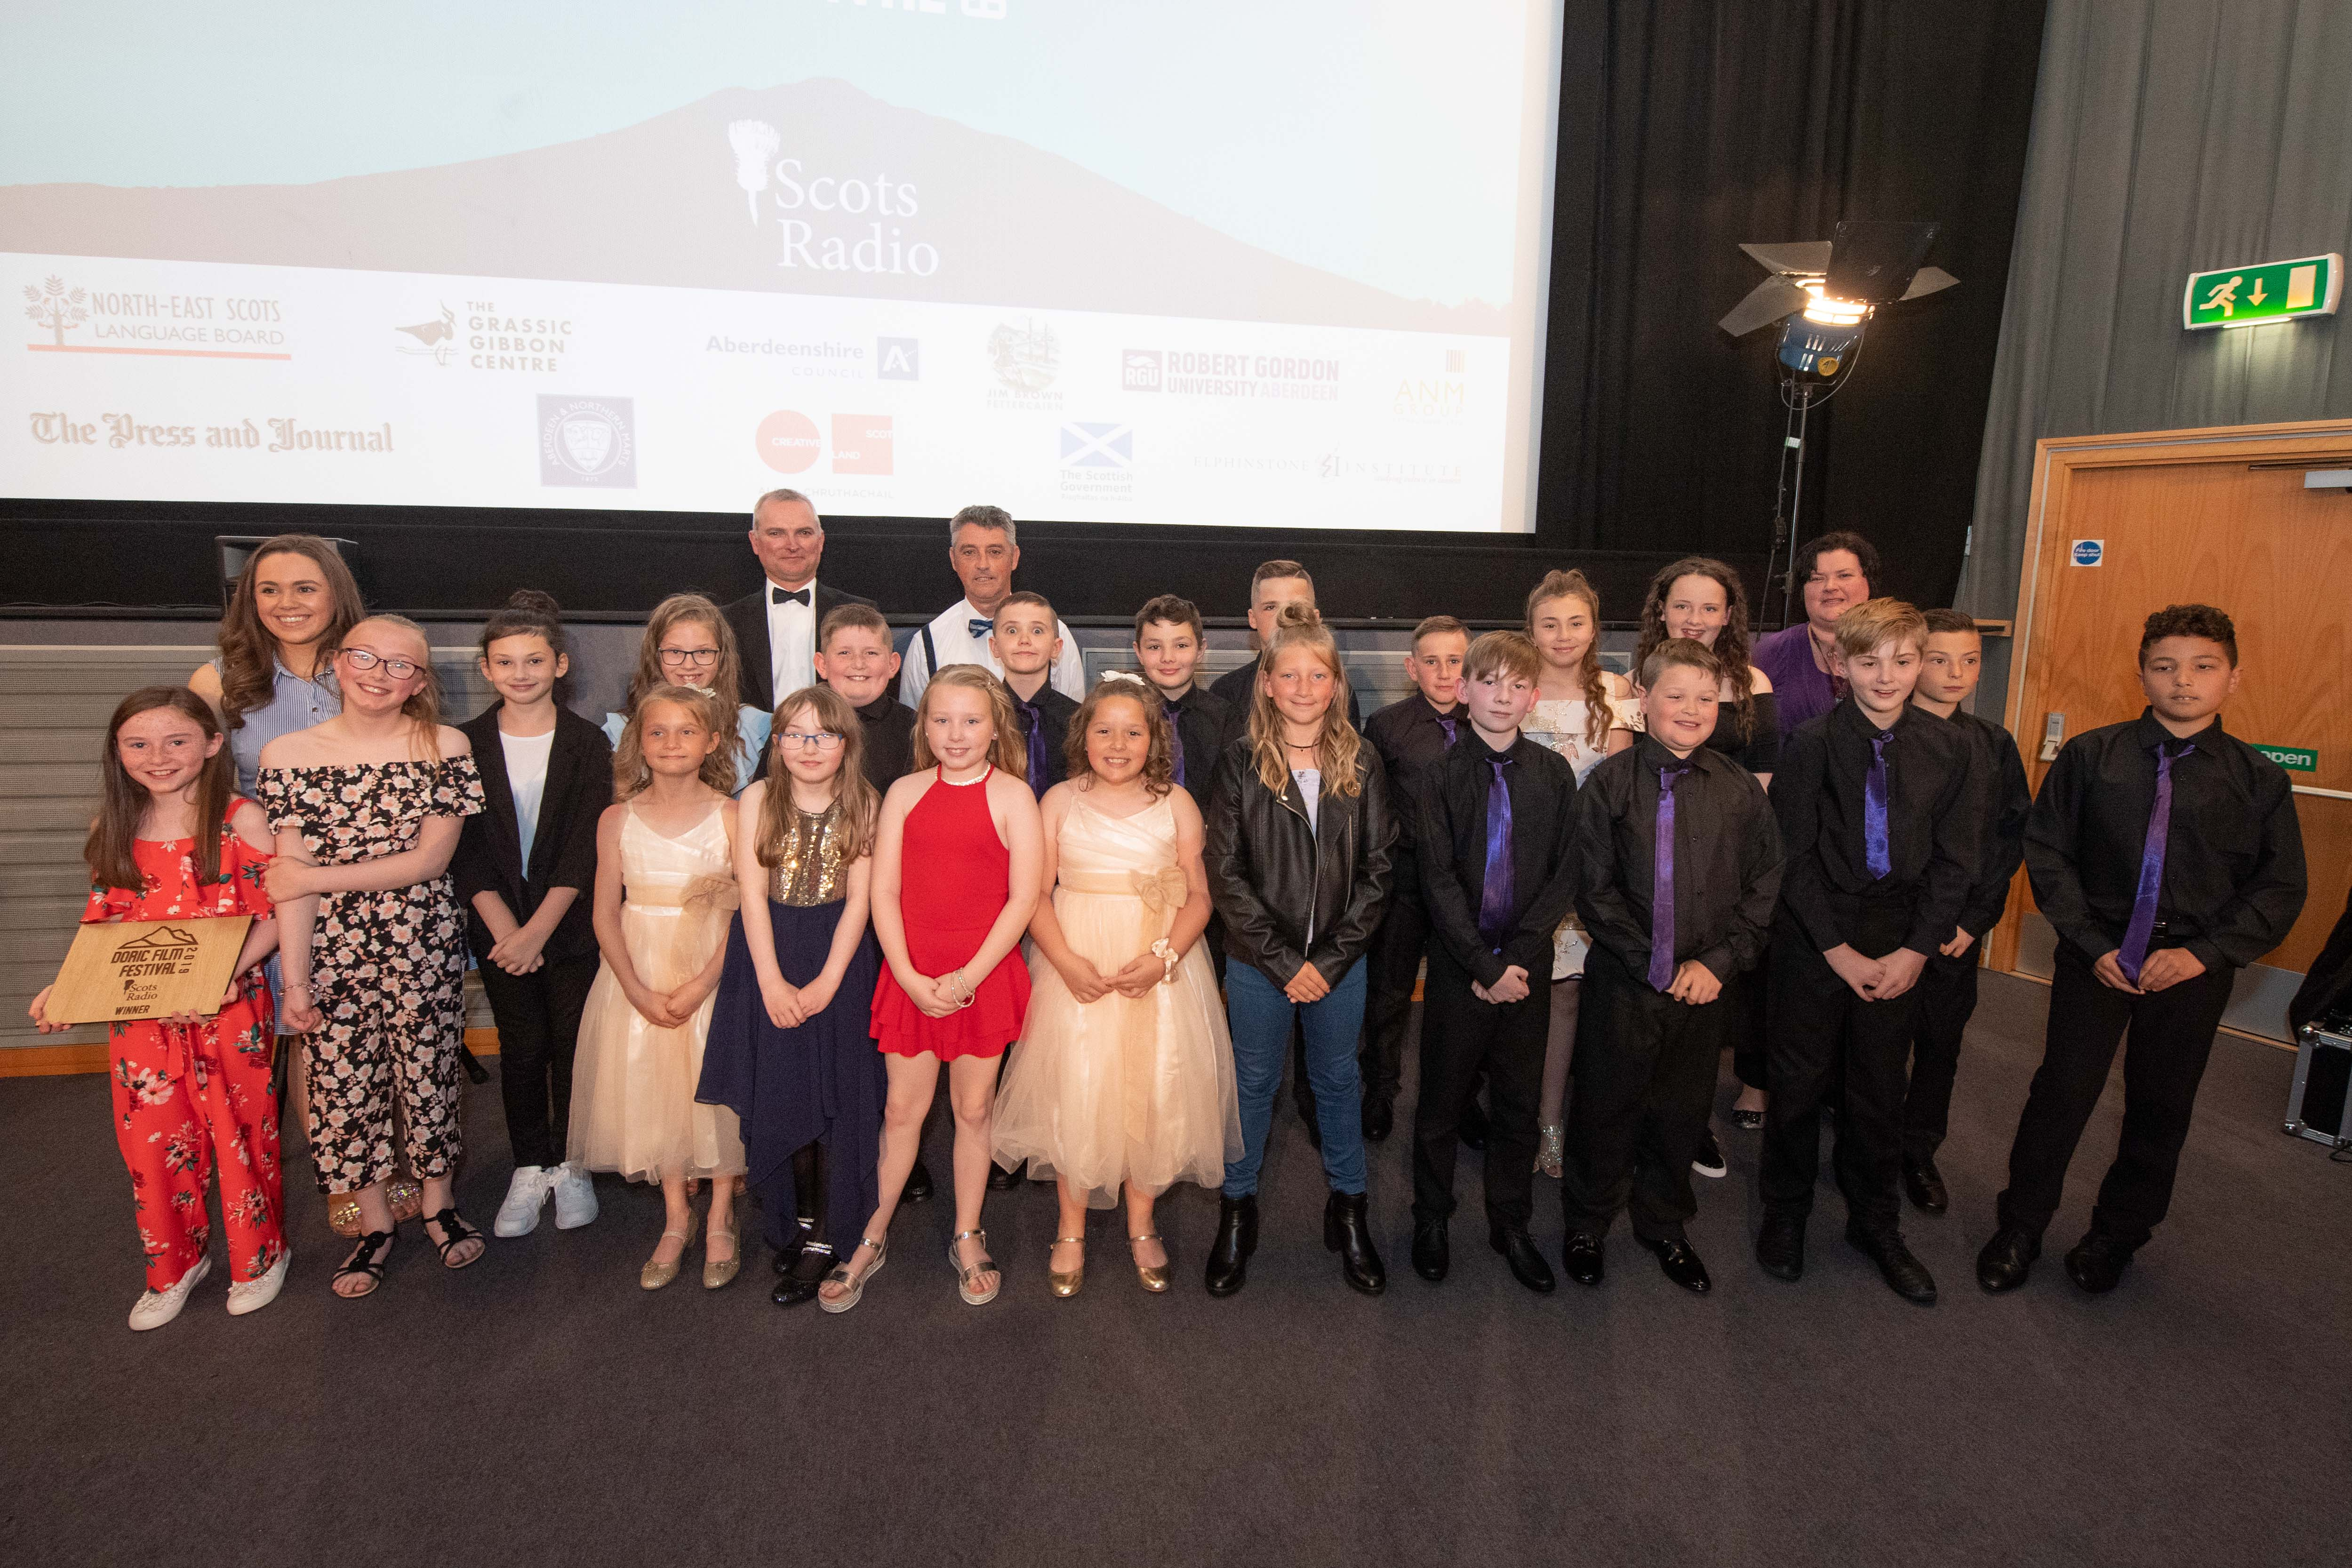 Meethill Primary school at the Doric Film Festival 2019 at Belmont Picture House.